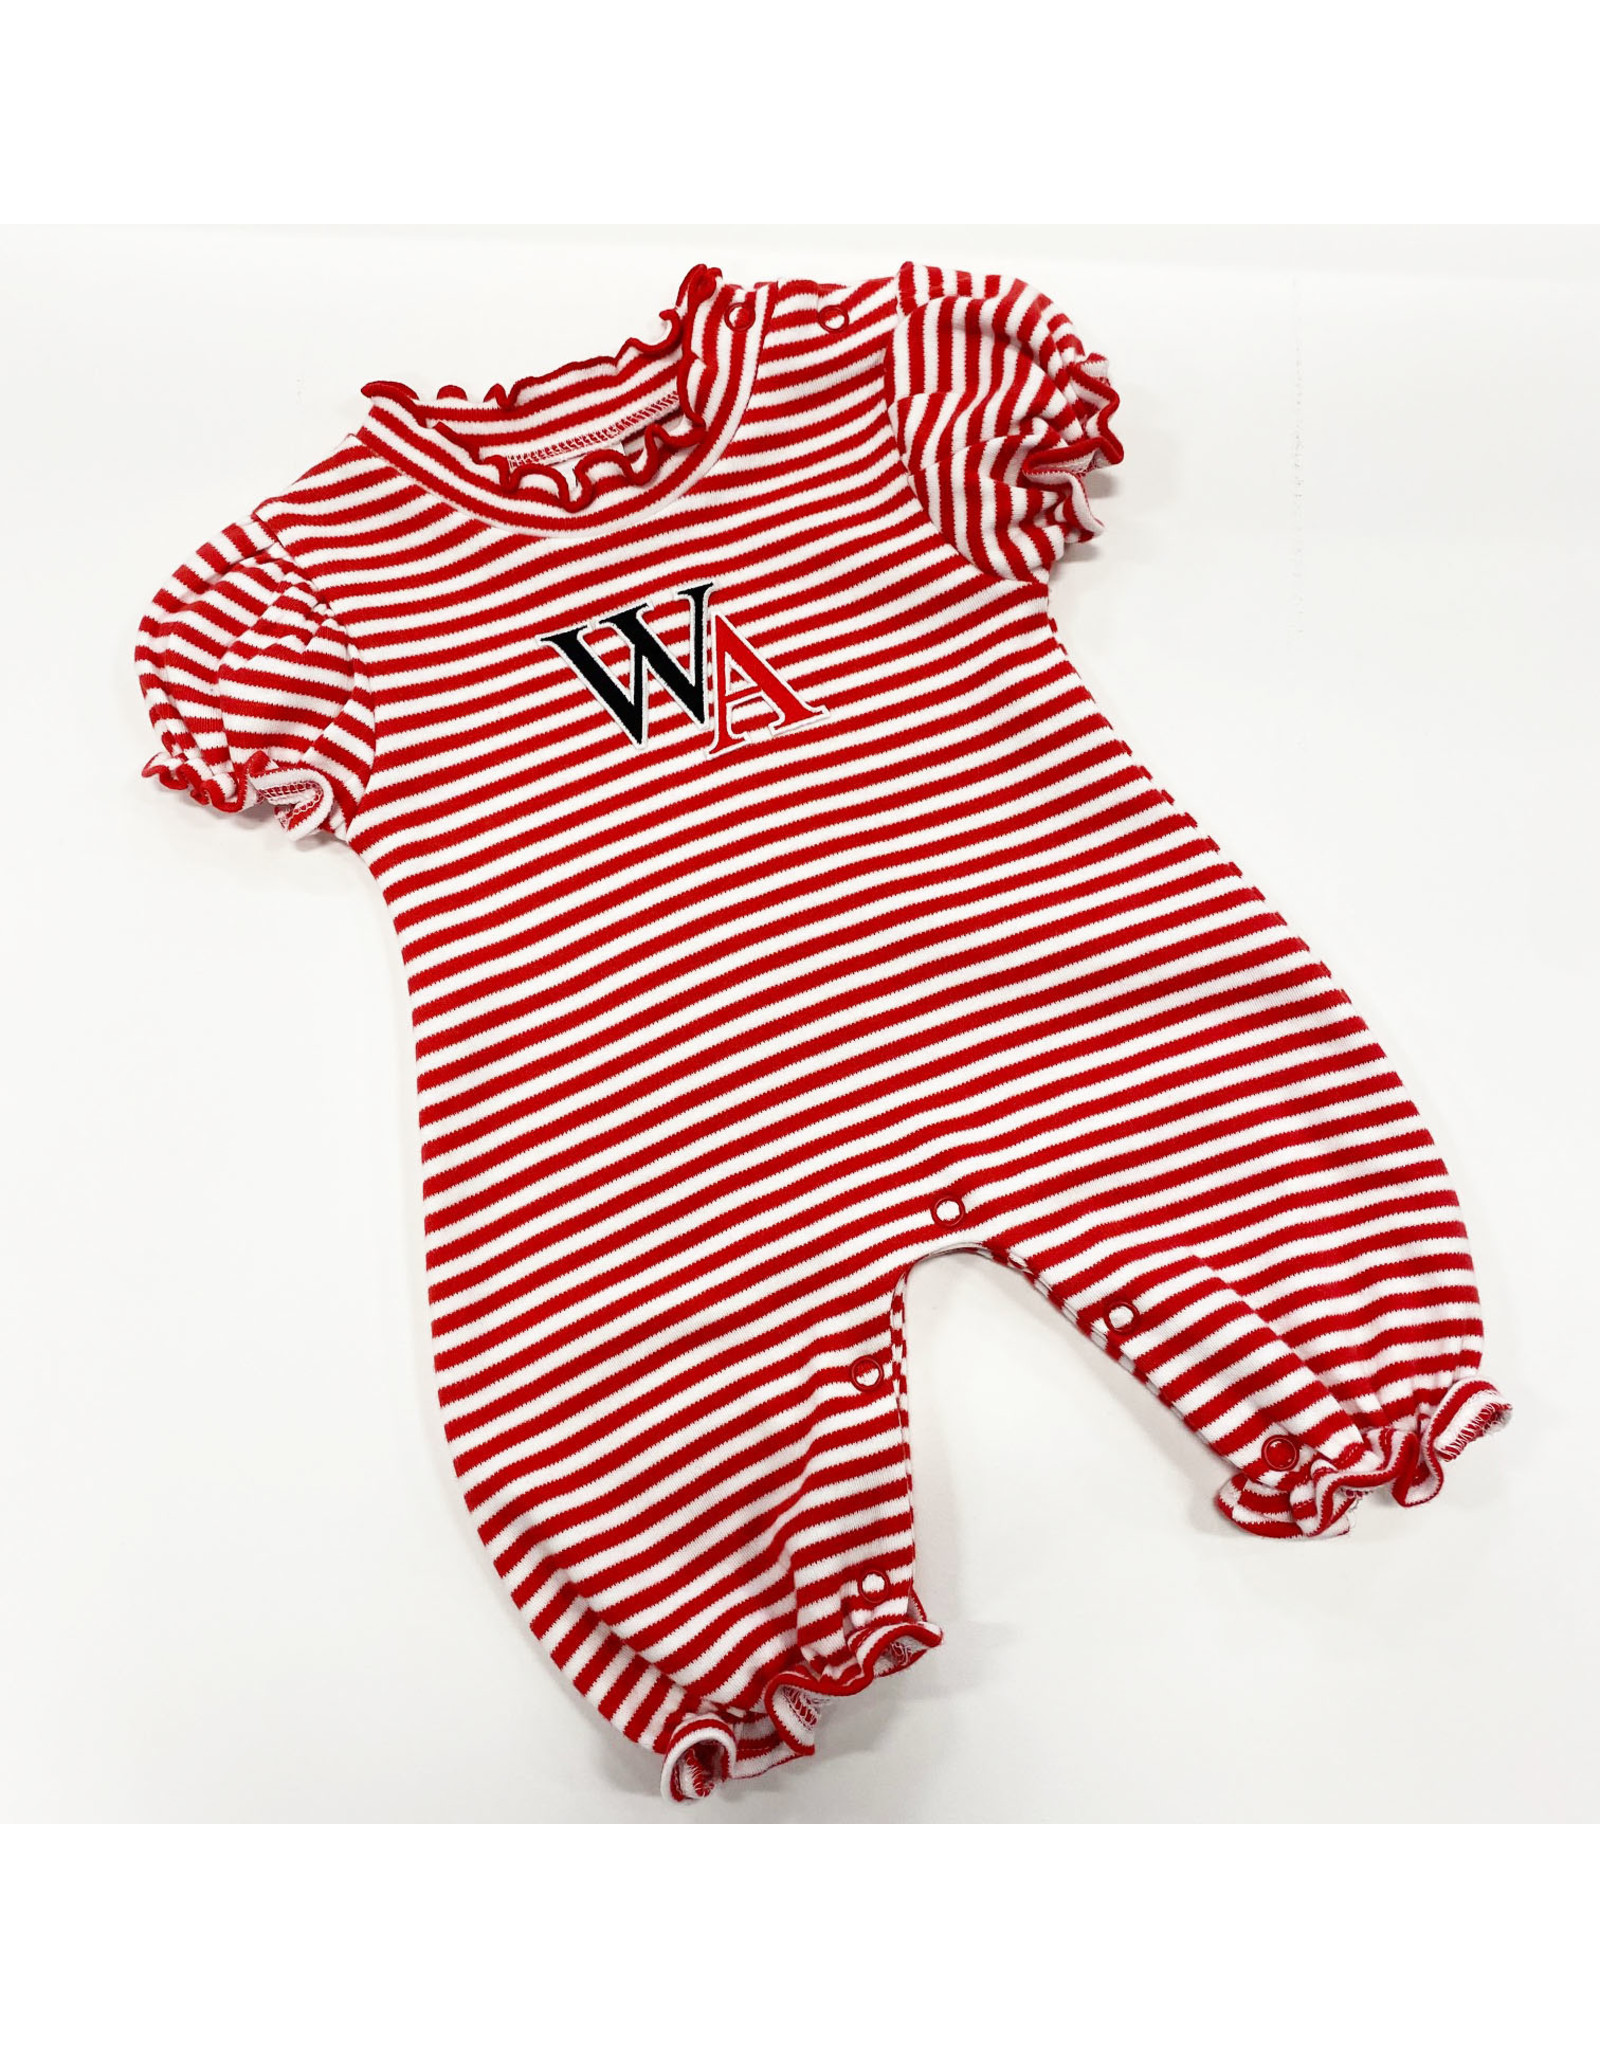 Creative Knitwear Baby Bubble Romper By Creative Knitwear